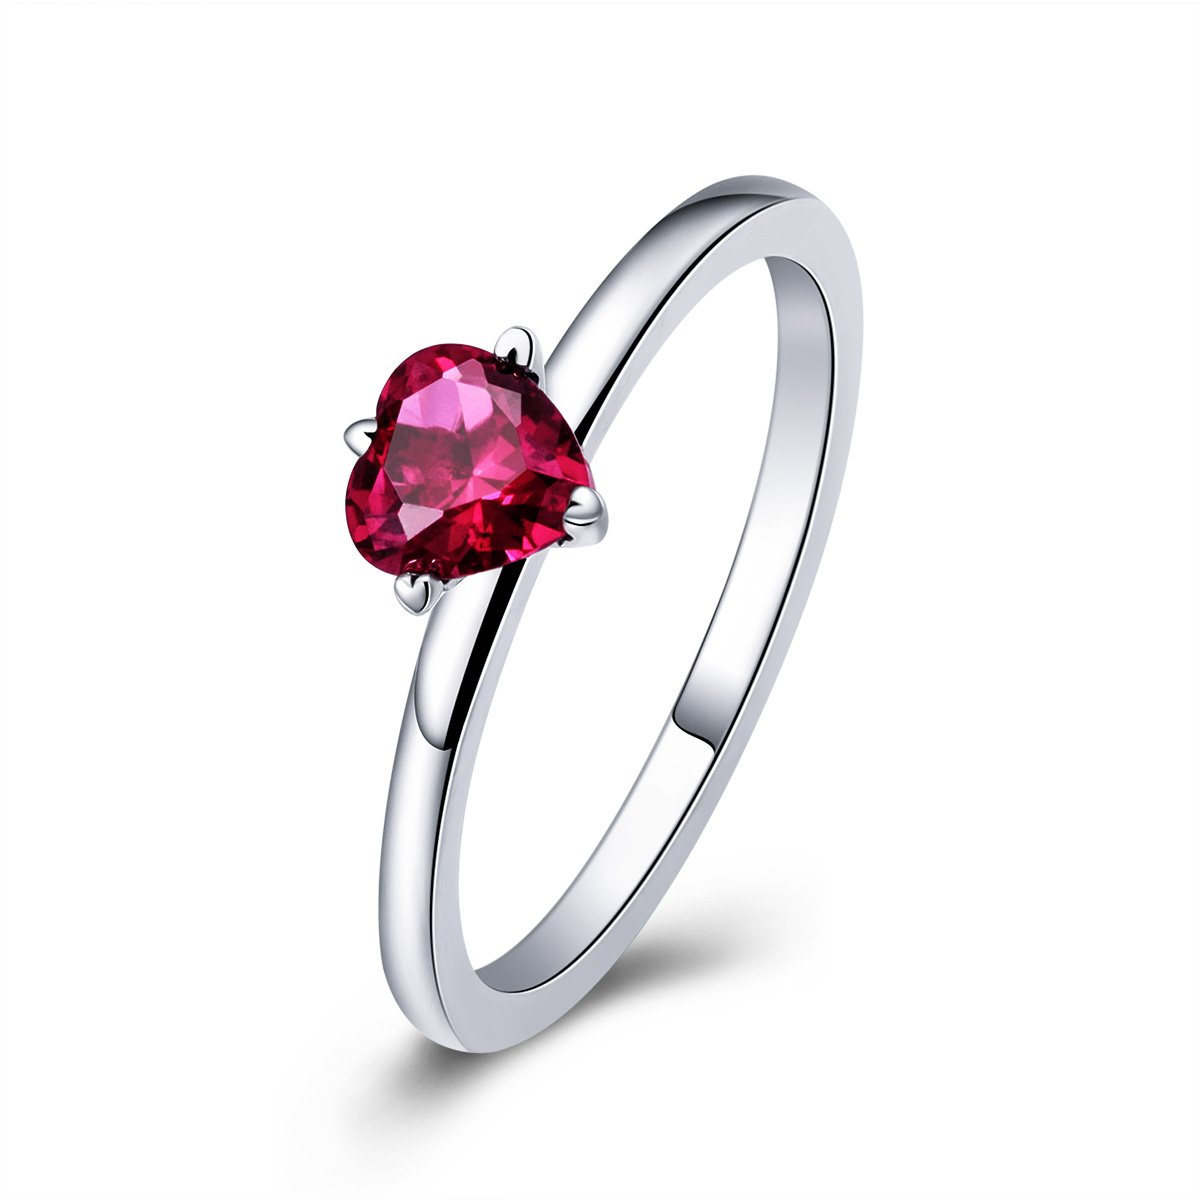 BISAER 925 Sterling Silver Created Ruby Ring, Heart Shape AAA CZ Solitaire Ring for Wedding Engagement Gift (Size 8)